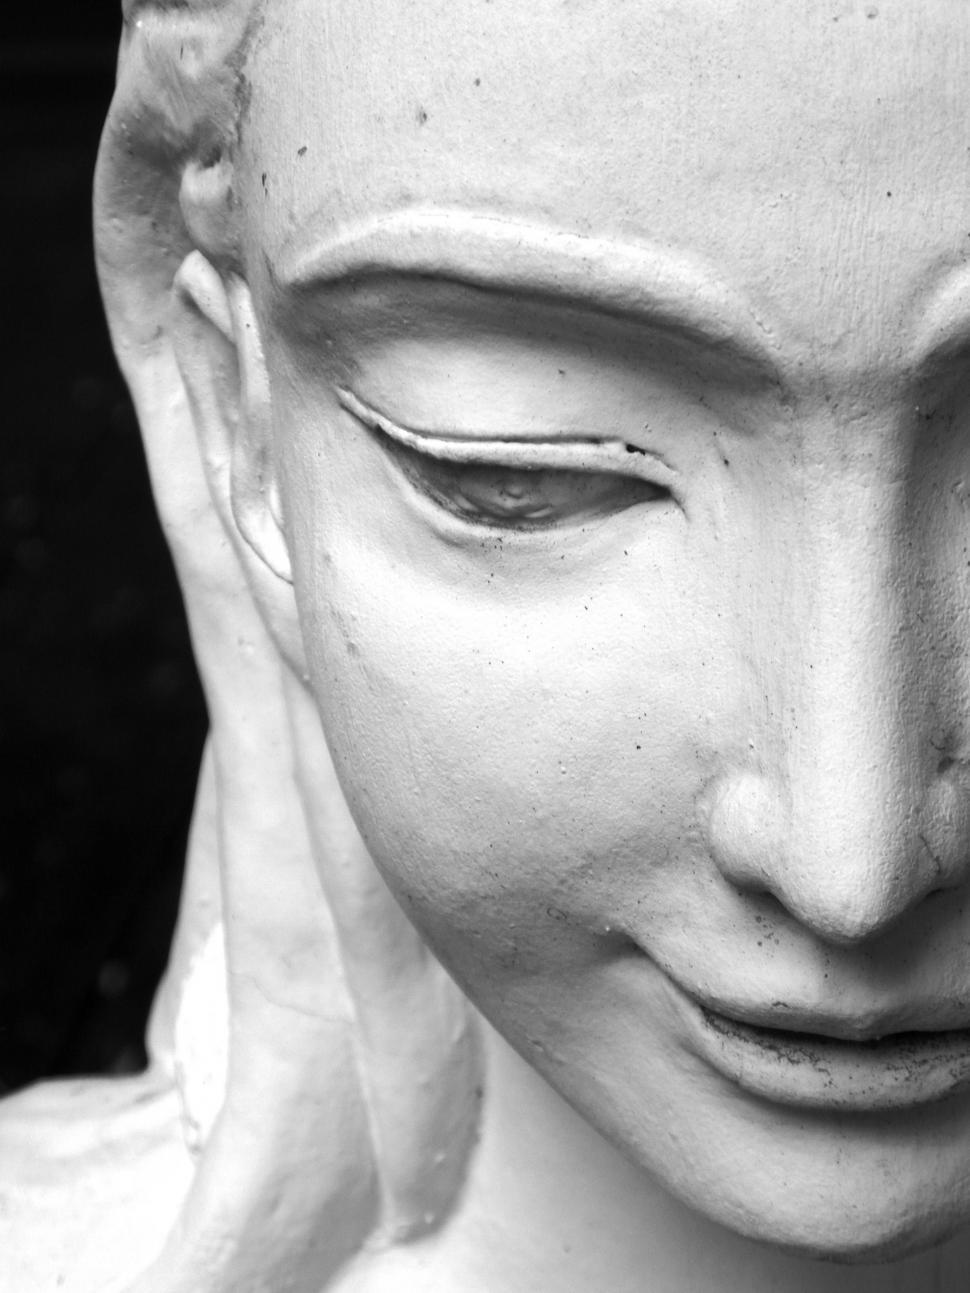 Download Free Stock HD Photo of Oriental Statue of a Woman Online